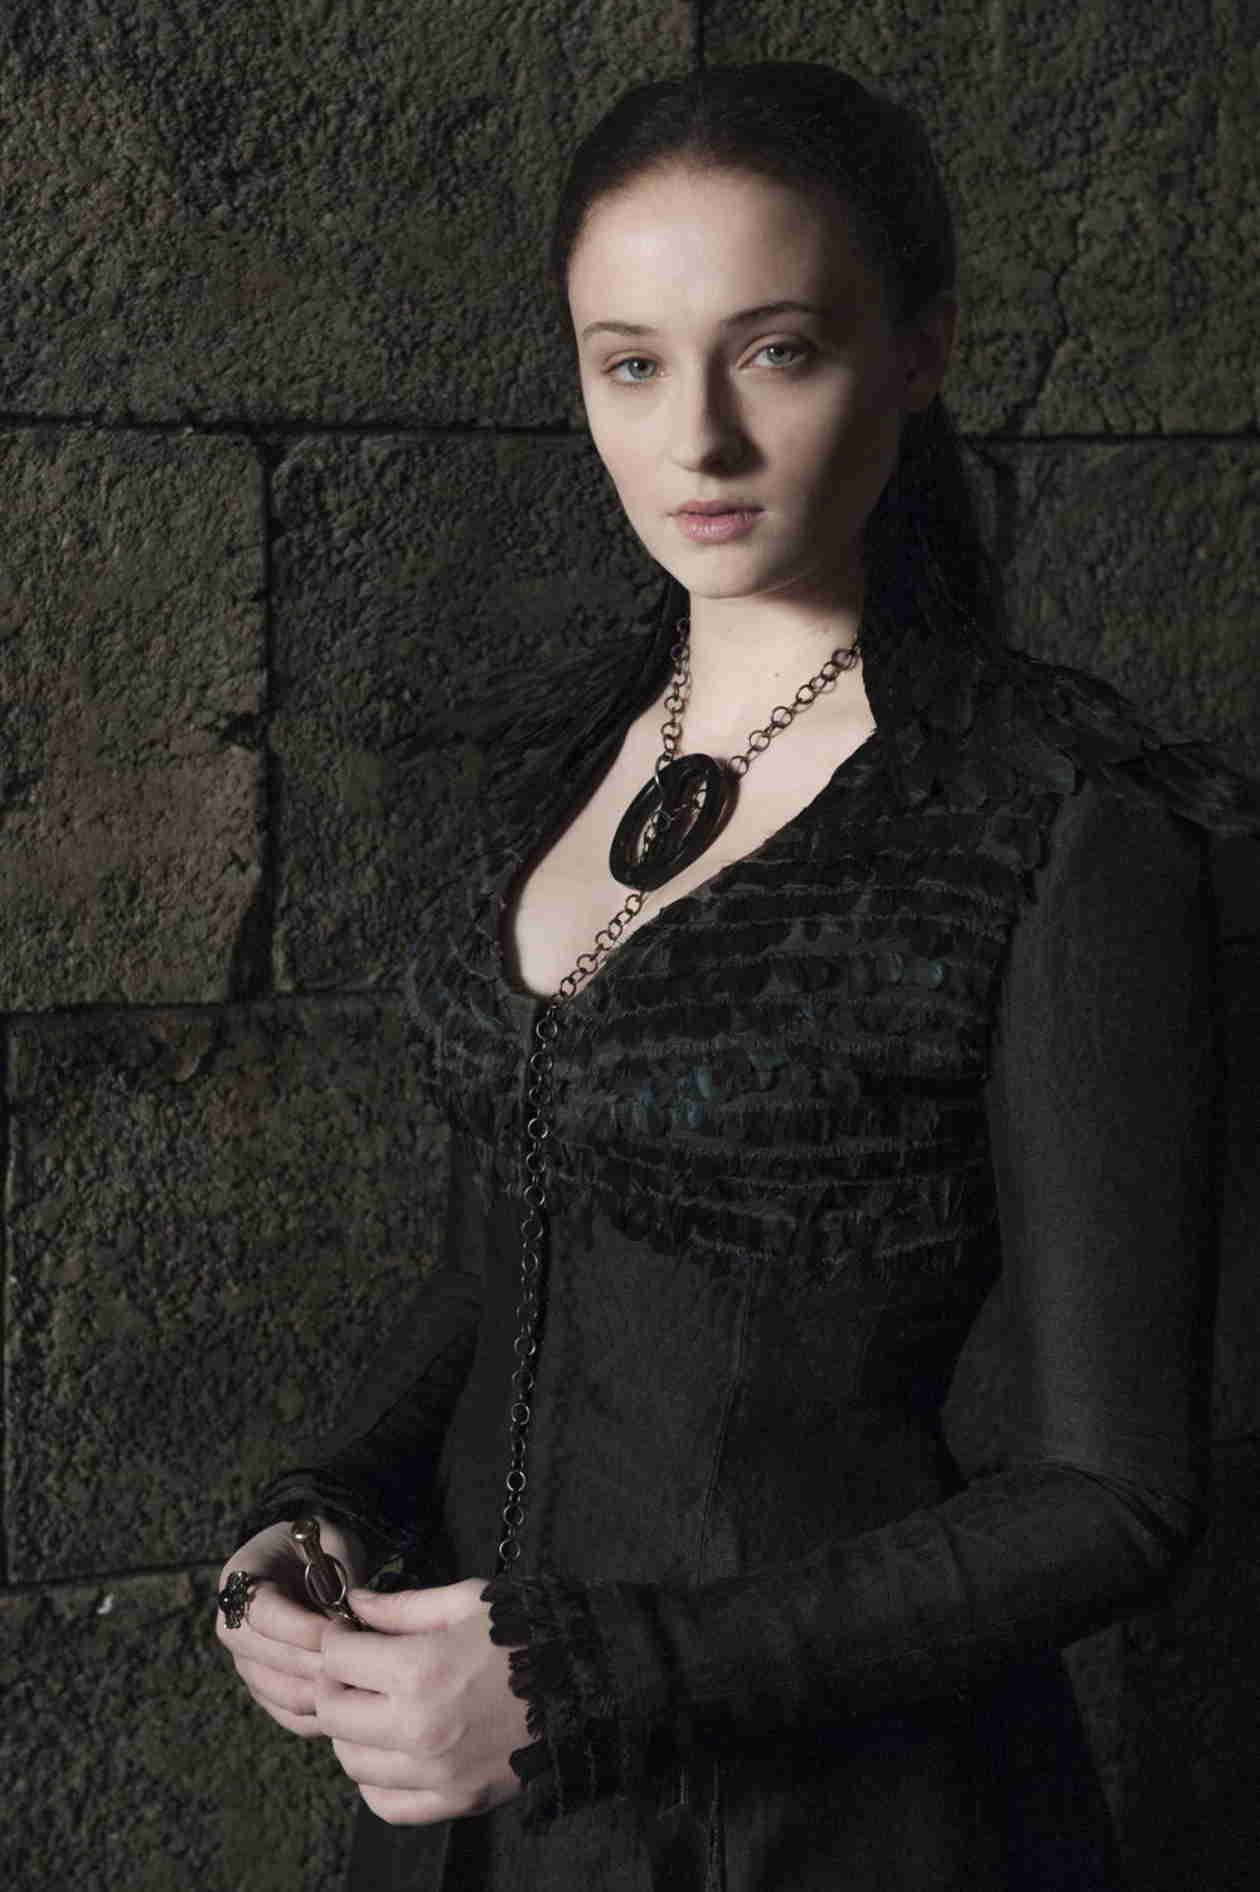 Game of Thrones Season 5 Spoilers: Sansa Will Use Her Sexuality to Manipulate